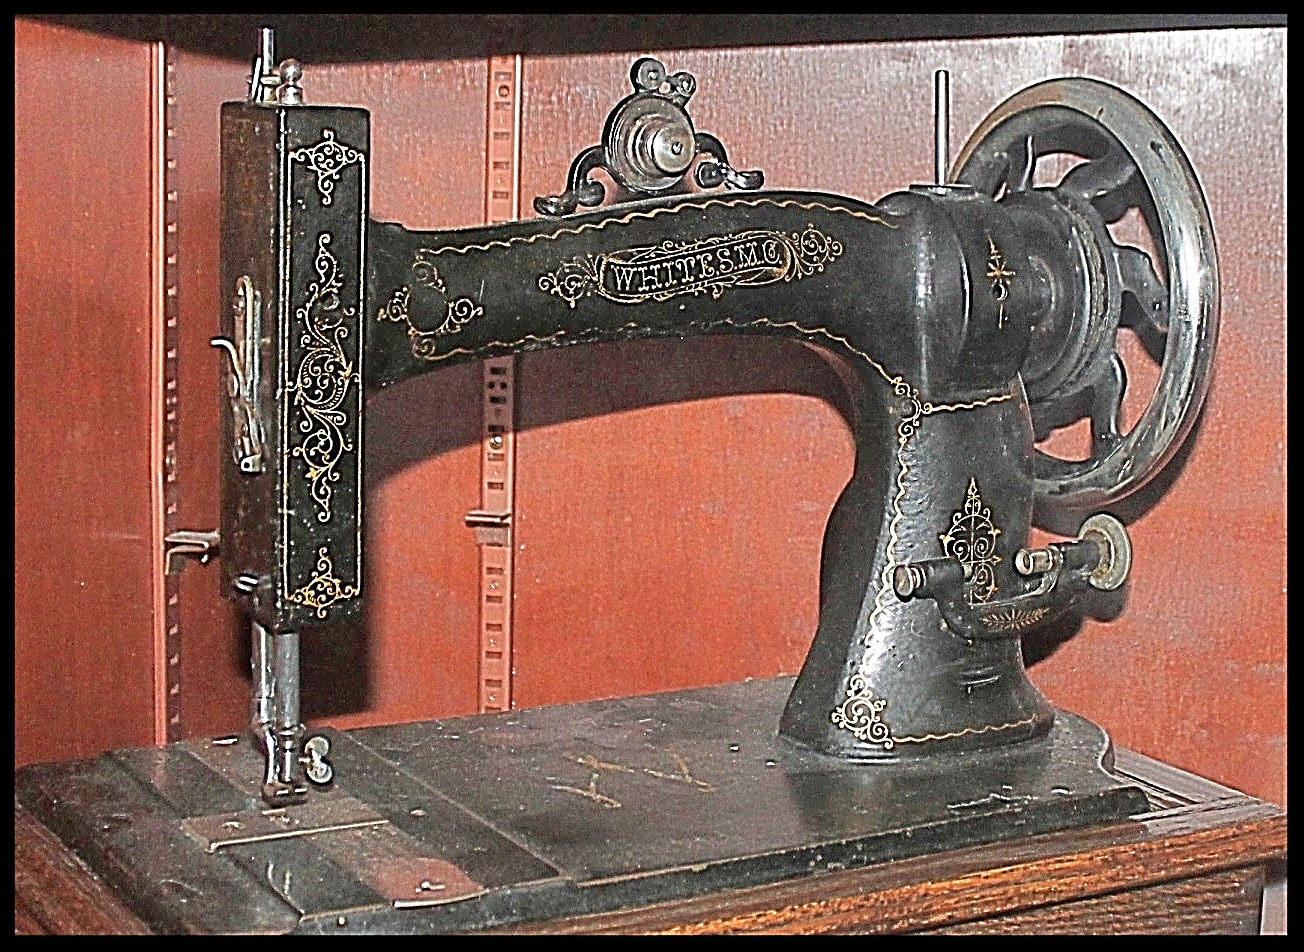 White Sewing Machine Company Fiddlebase